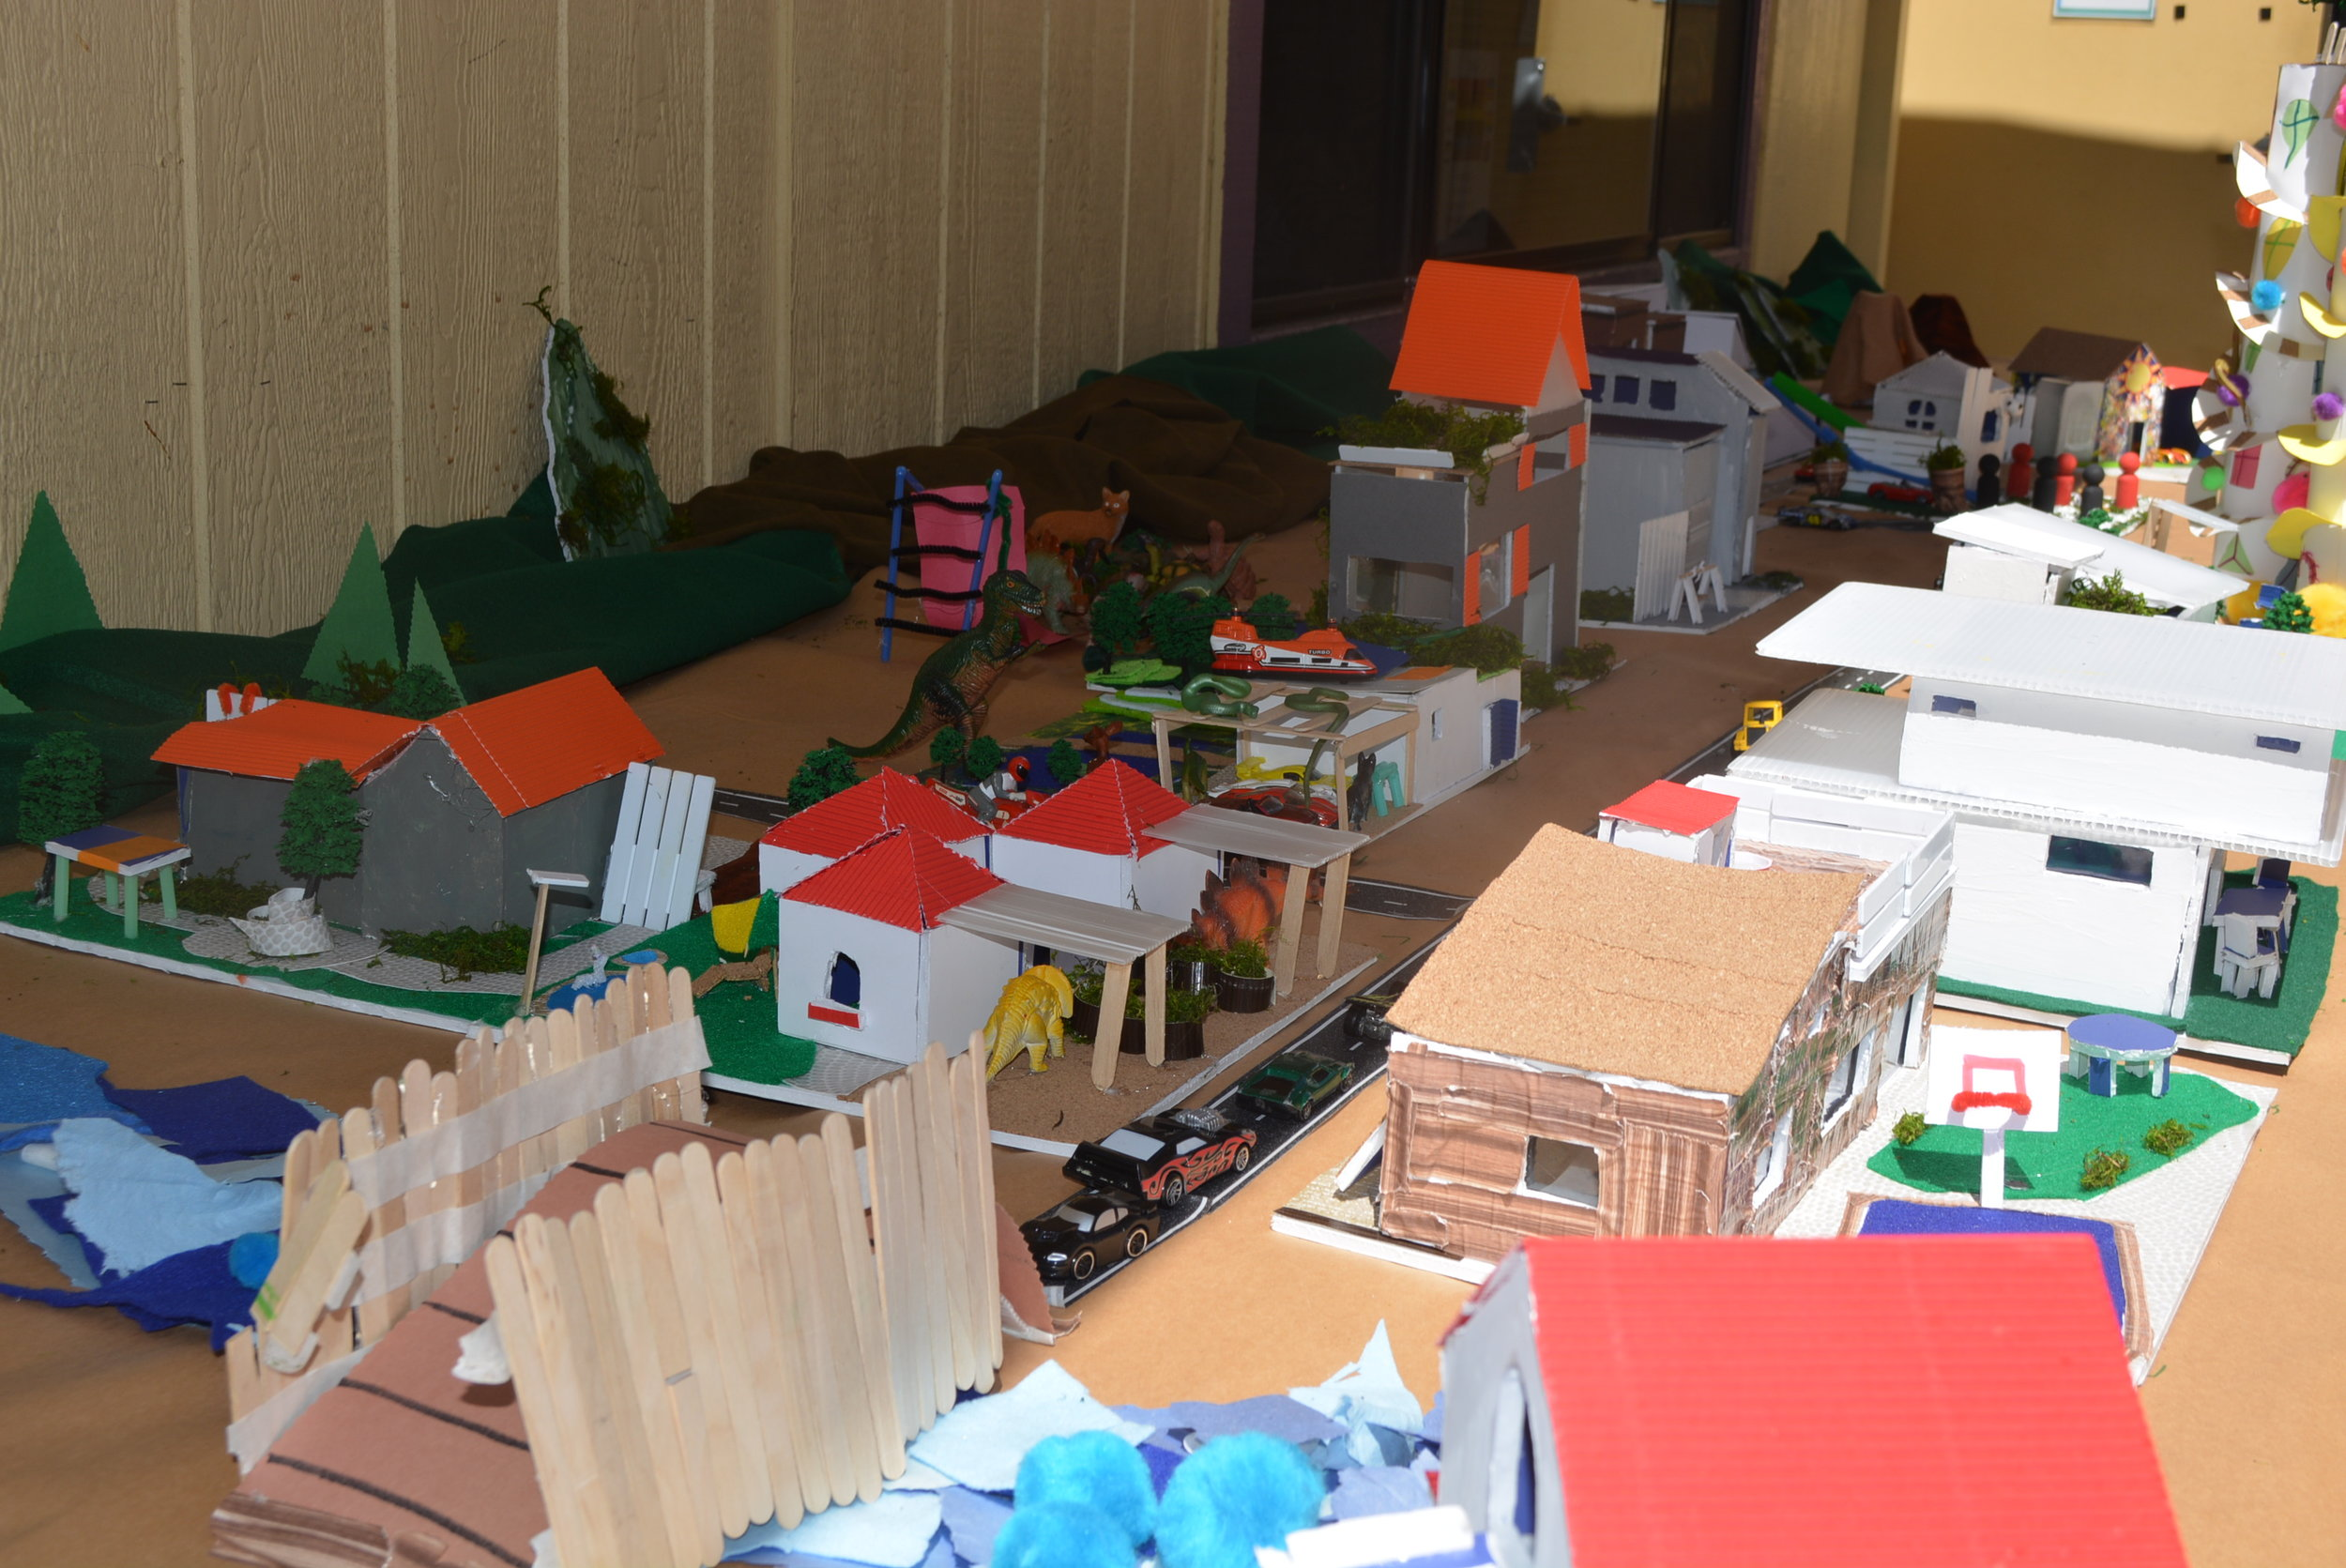 Our campers managed to plan and build an entire neighborhood from scratch!